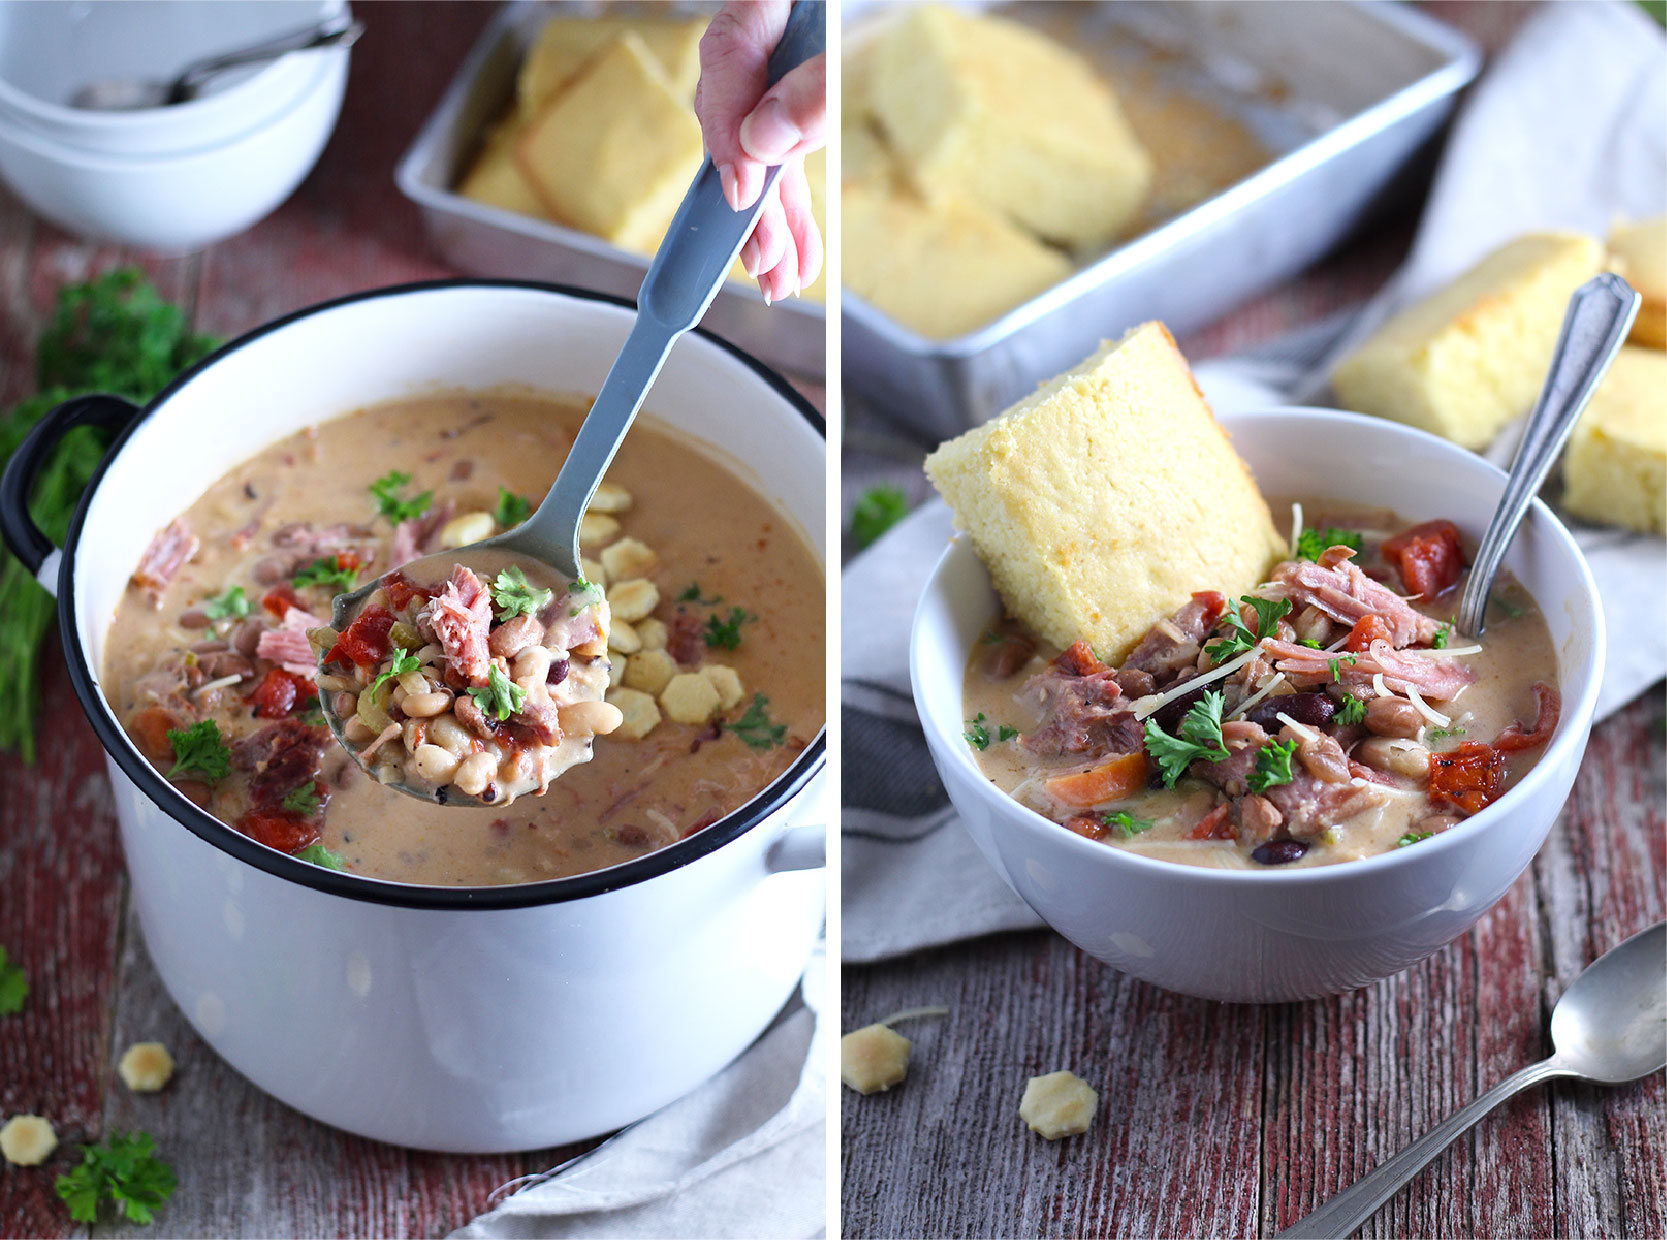 Easy-to-make, hearty soup packed with smoked ham and 6 kinds of beans. One of my favorite cold weather comfort foods.